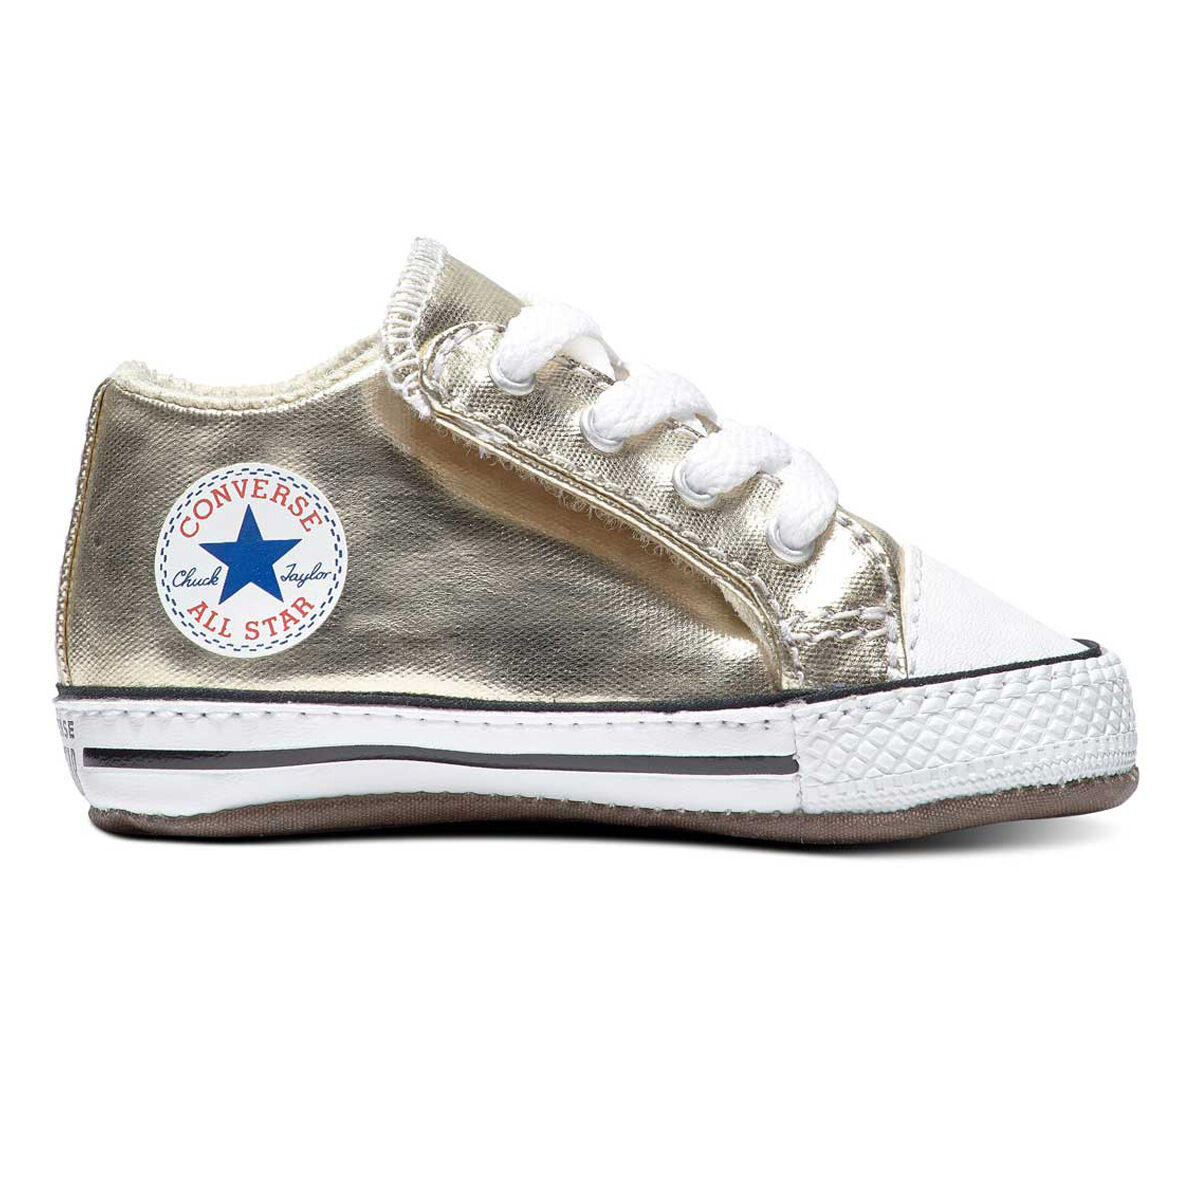 Converse Chuck Taylor All Star Metallic Cribster Toddlers Shoes